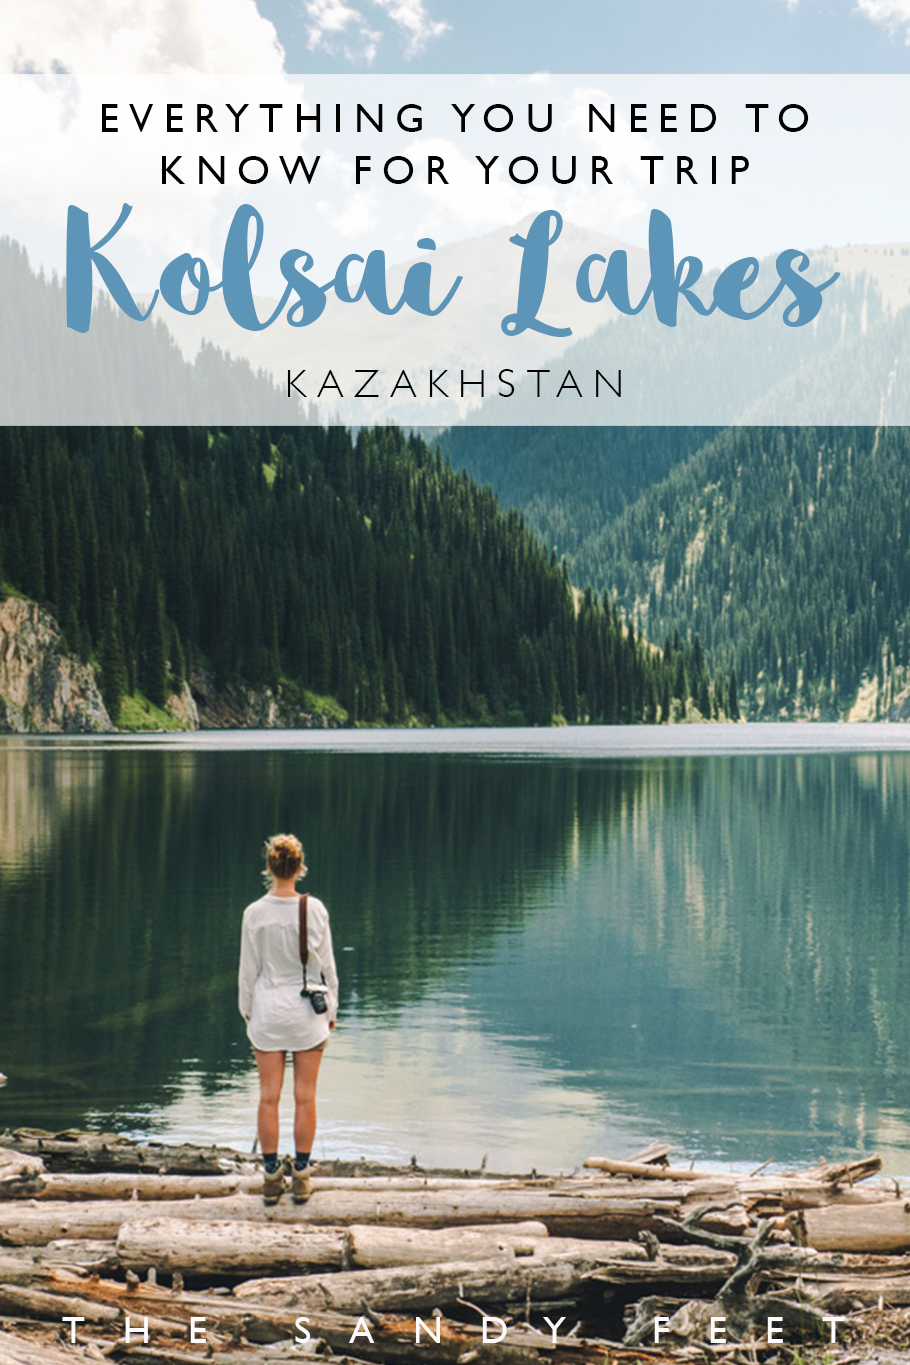 Kolsai Lakes + Lakes Kaindy: Everything You Need To Know For Your Trip in South-East Kazakhstan